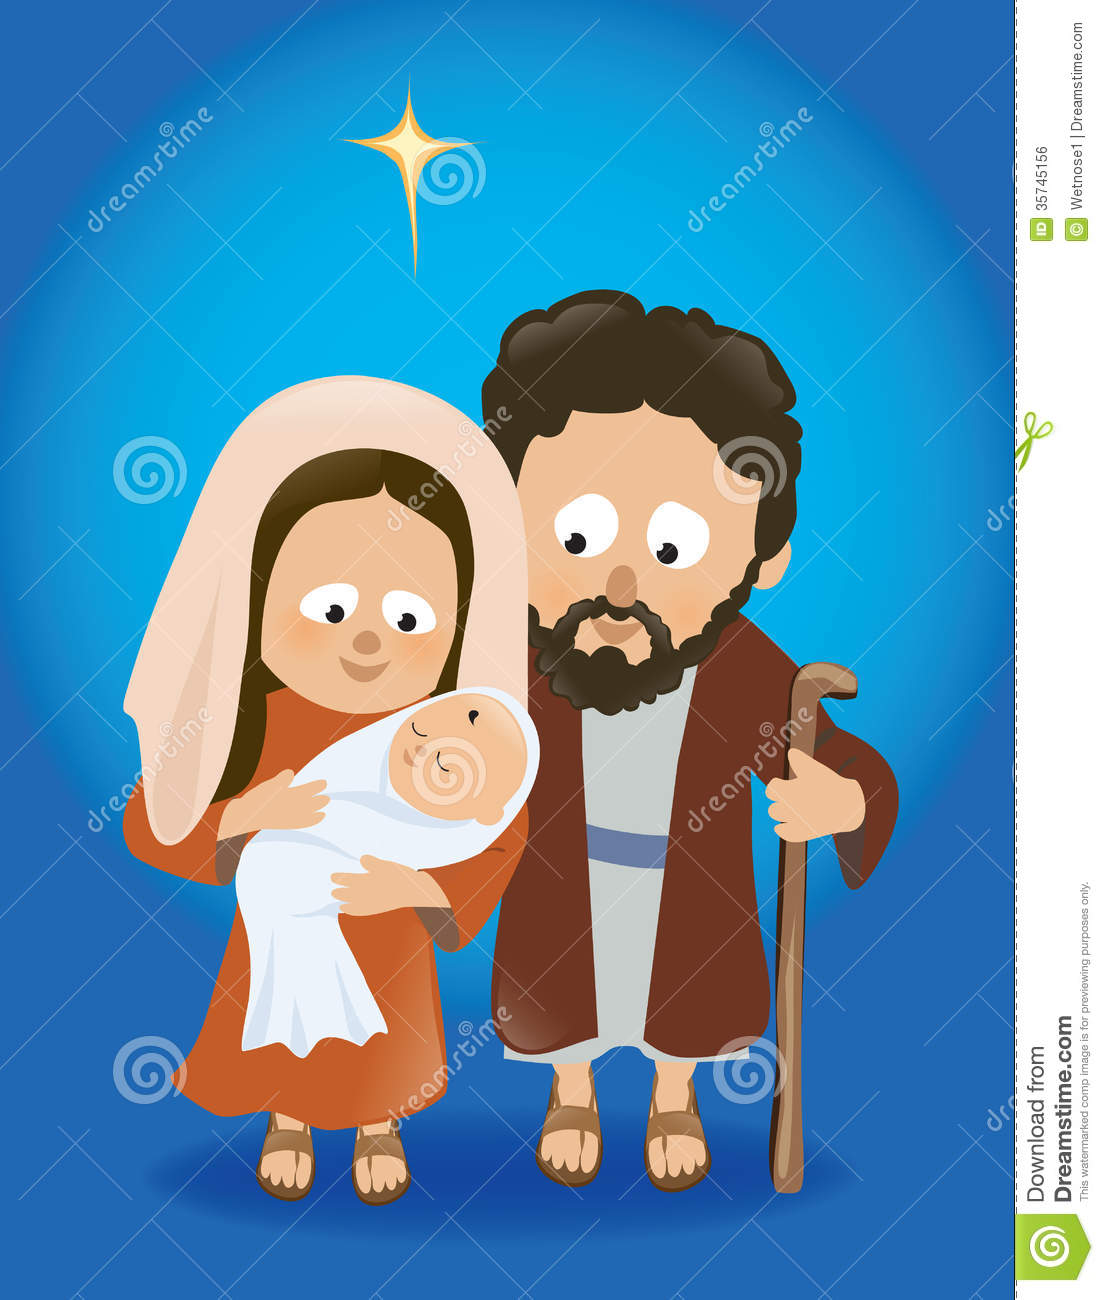 Free jesus and mary clipart jpg transparent stock Clipart baby jesus mary joseph - ClipartFox jpg transparent stock